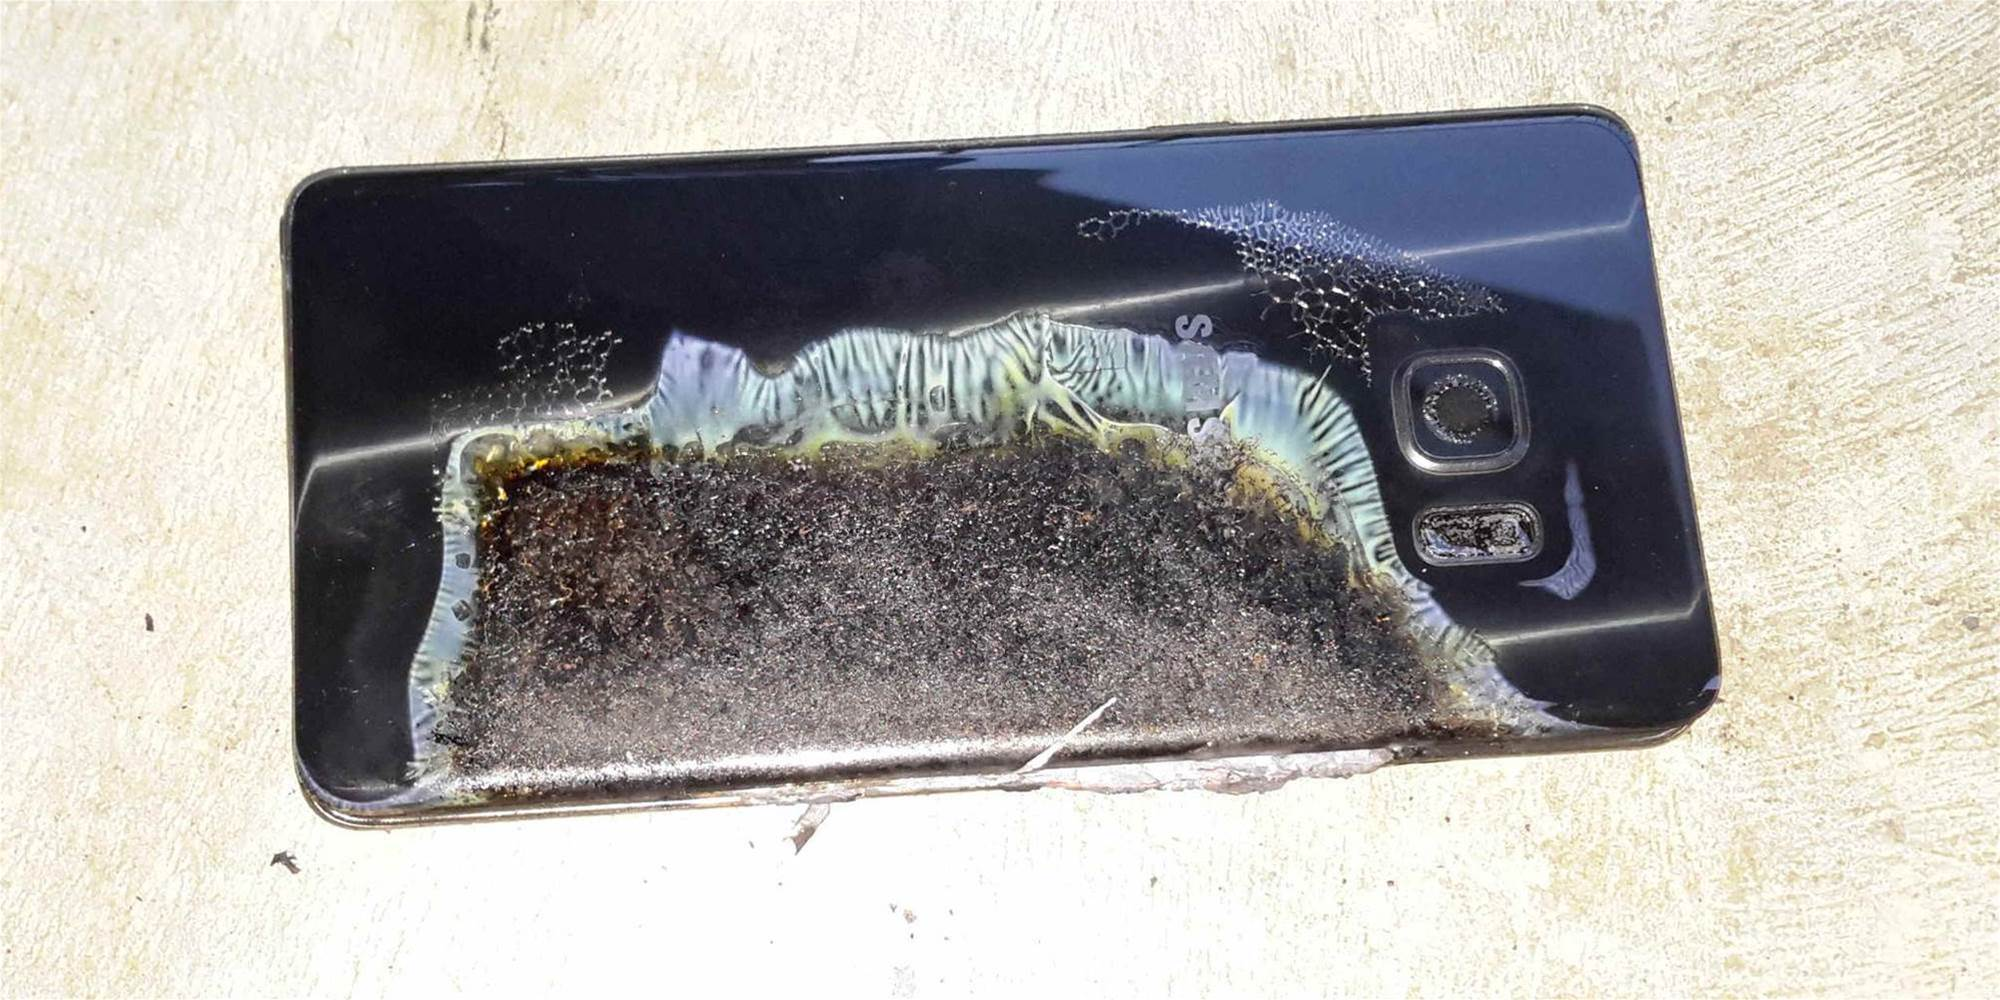 Your Samsung Note 7 will be almost completely useless on December 15th